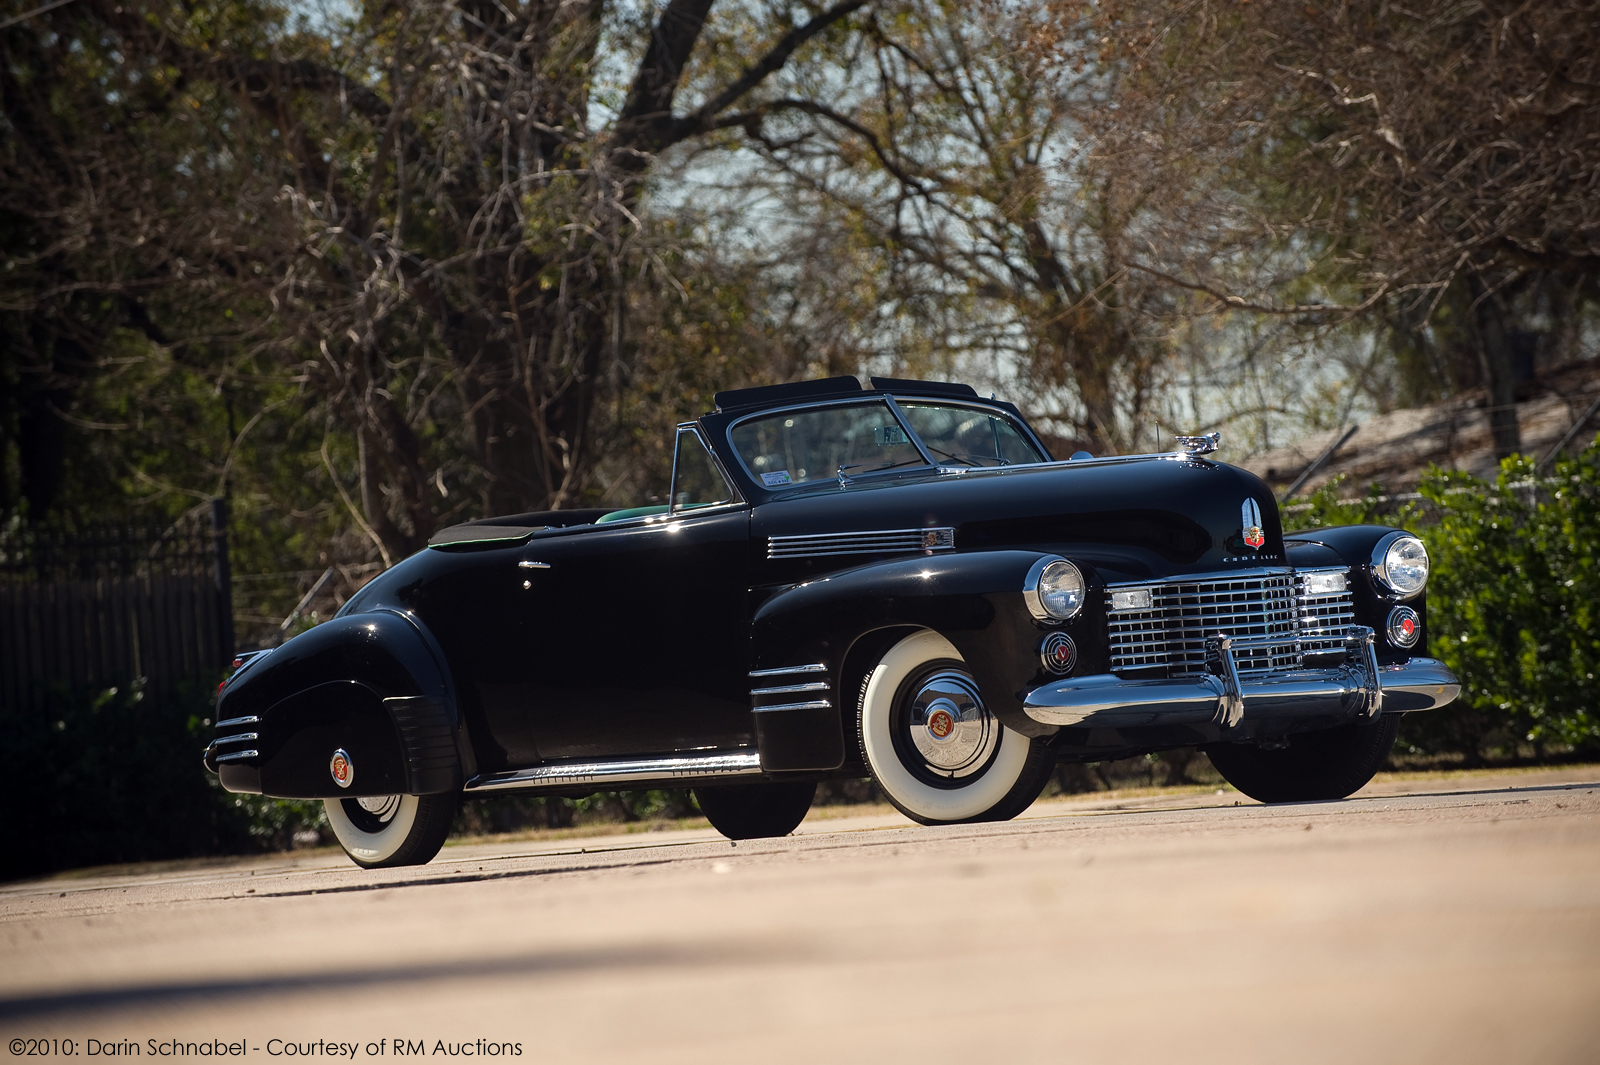 Fleetwood Cadillac Series 62 Convertible Coupe 1941